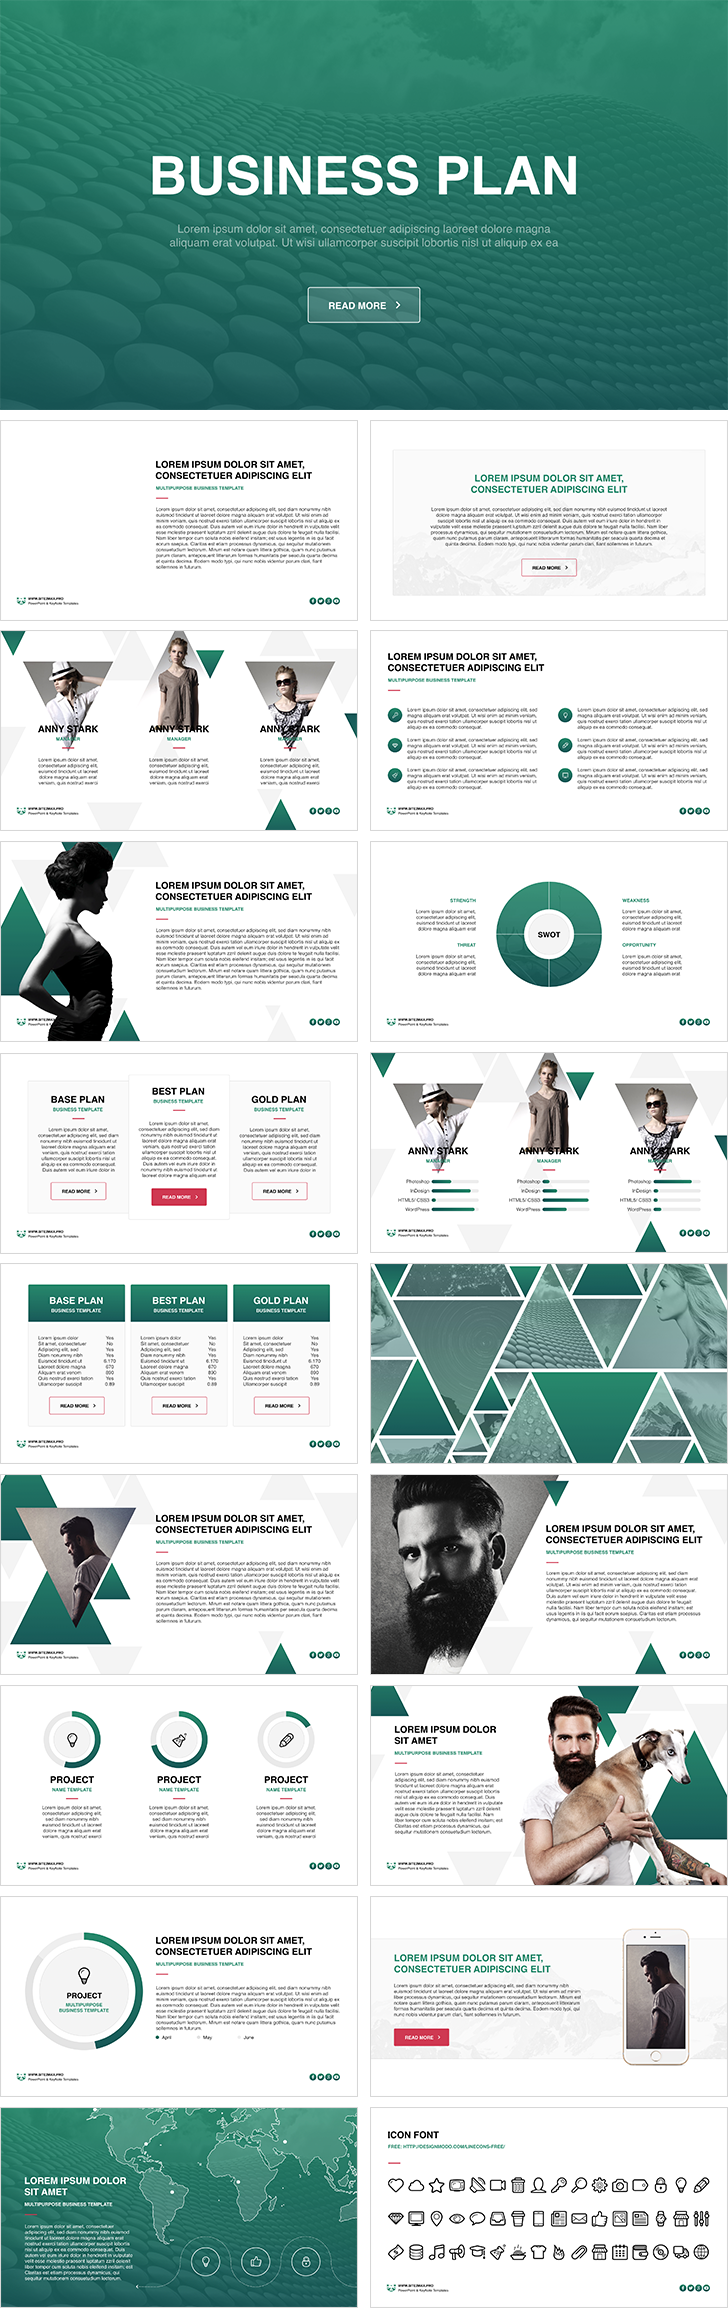 Business plan free keynote template free download indesign business plan free keynote template free download accmission Image collections